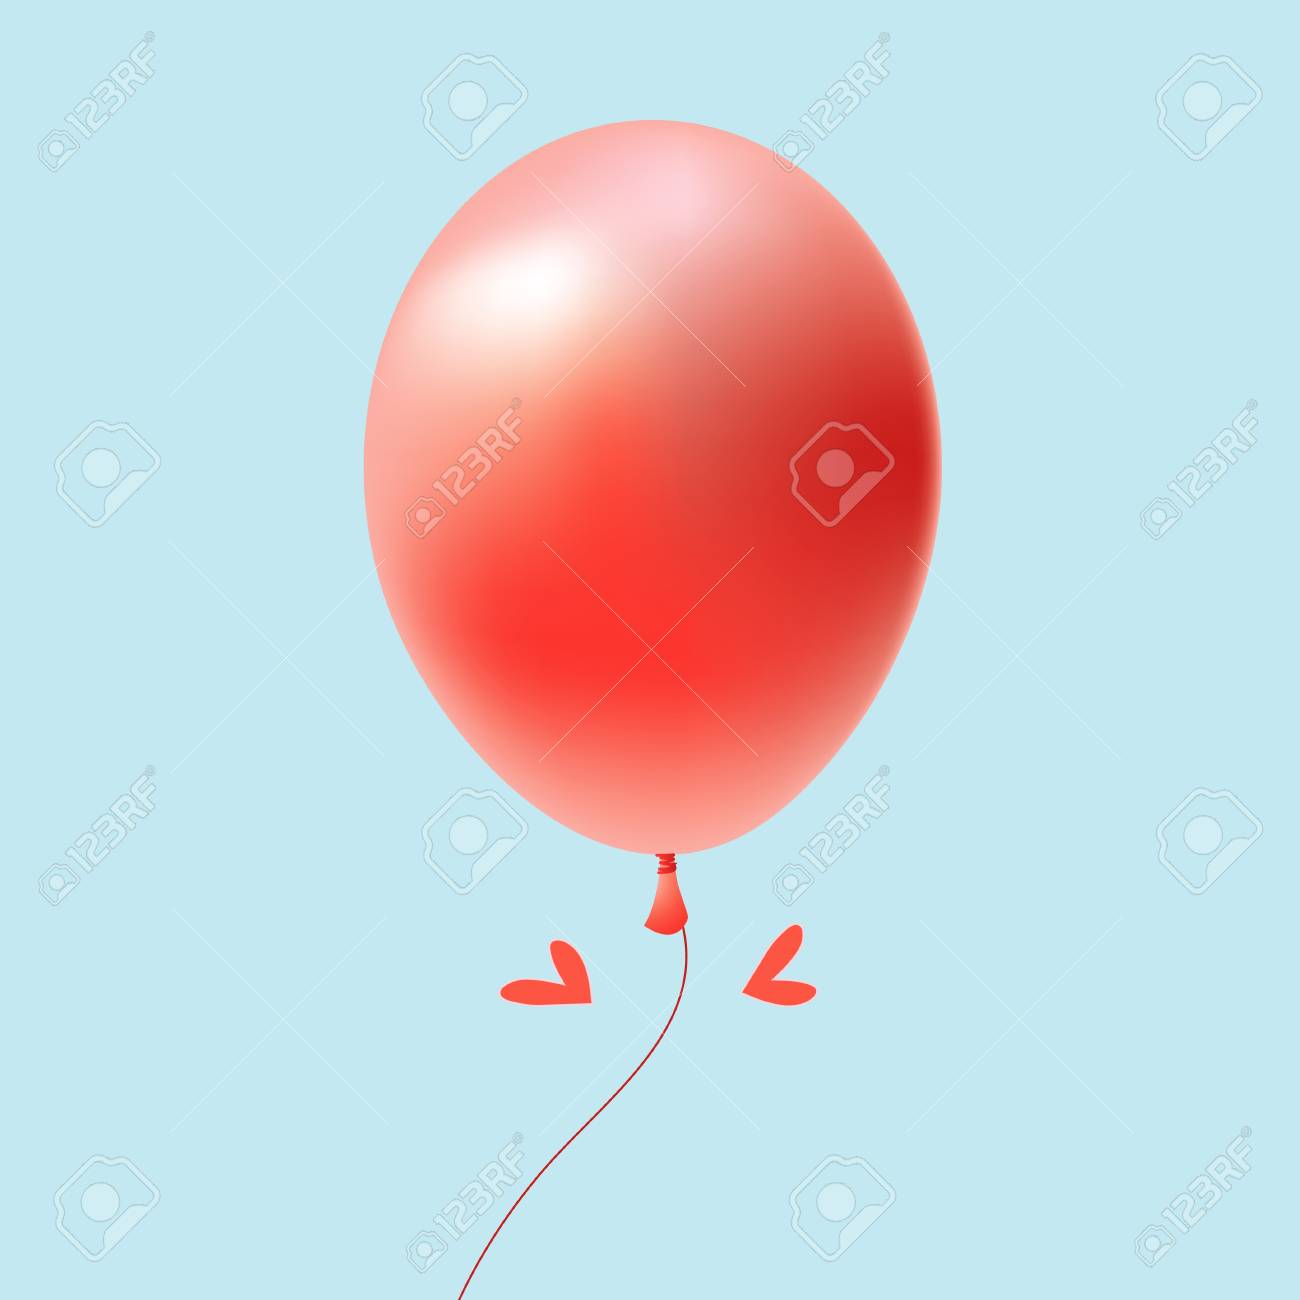 bright red balloon on a blue background Stock Vector - 19581372